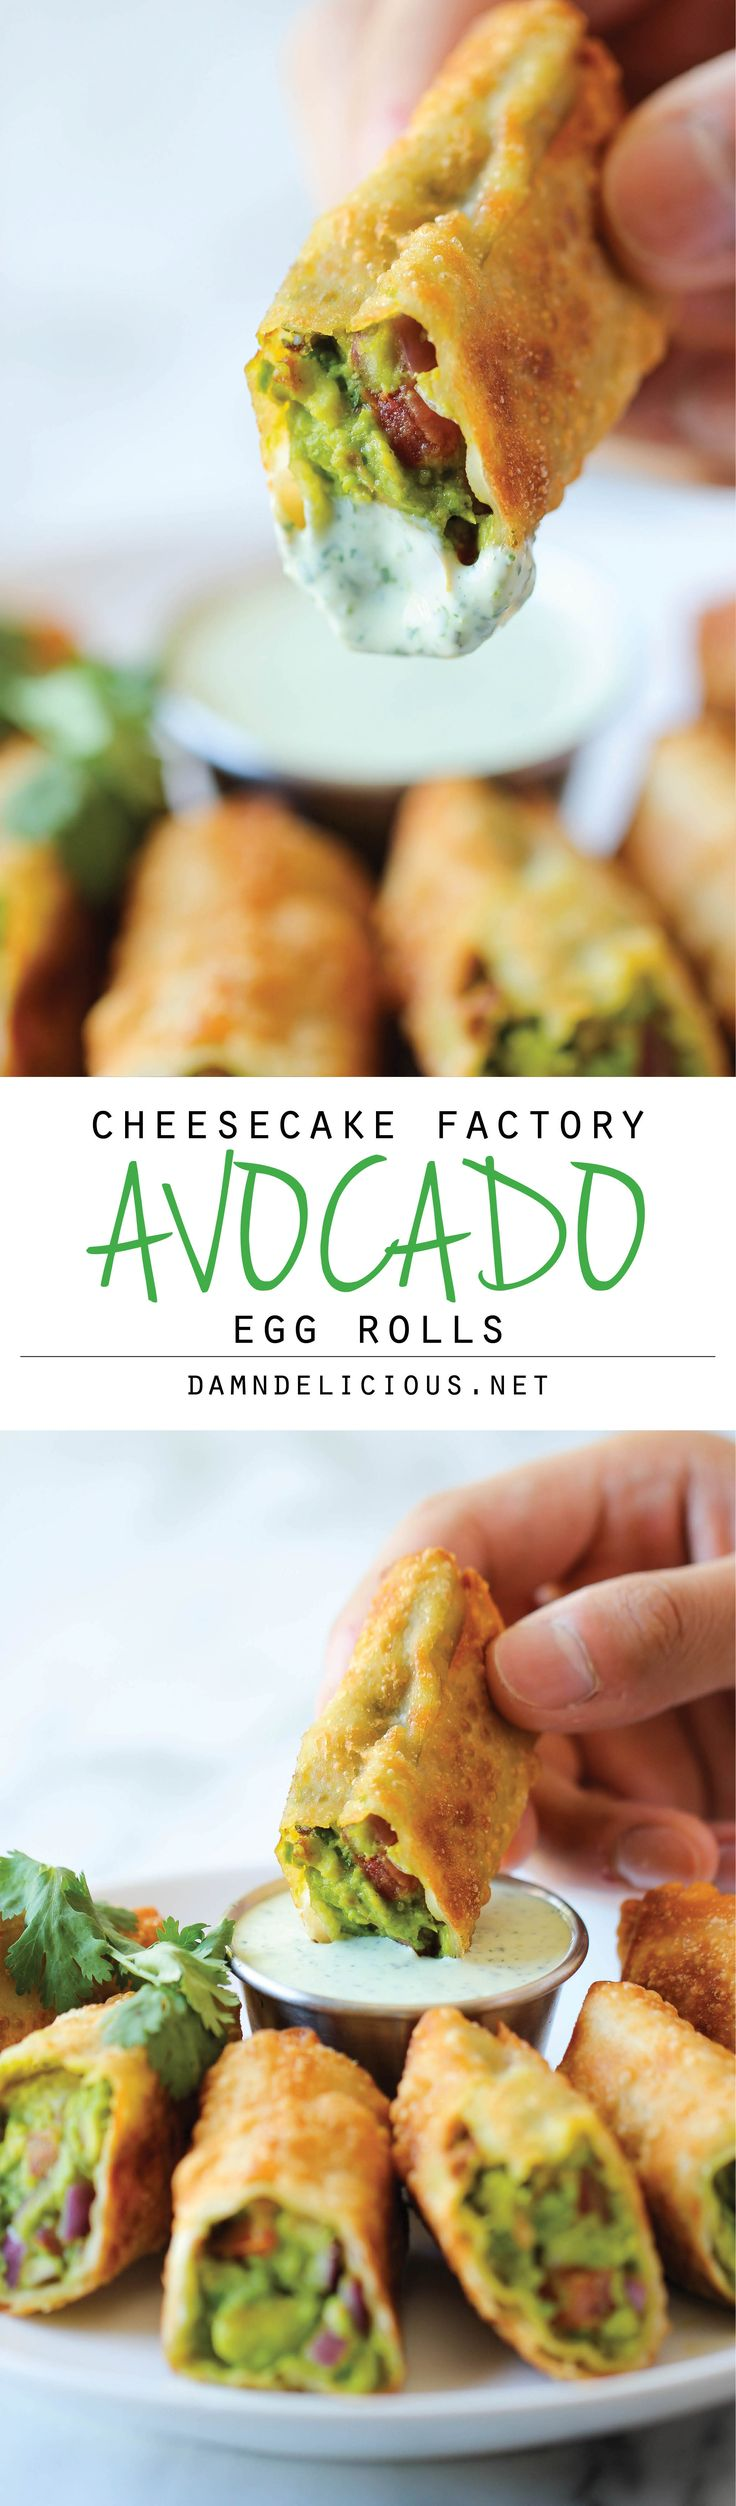 Cheesecake Factory Avocado Egg Rolls: it's so much cheaper to make right at home and it tastes a million times better too.